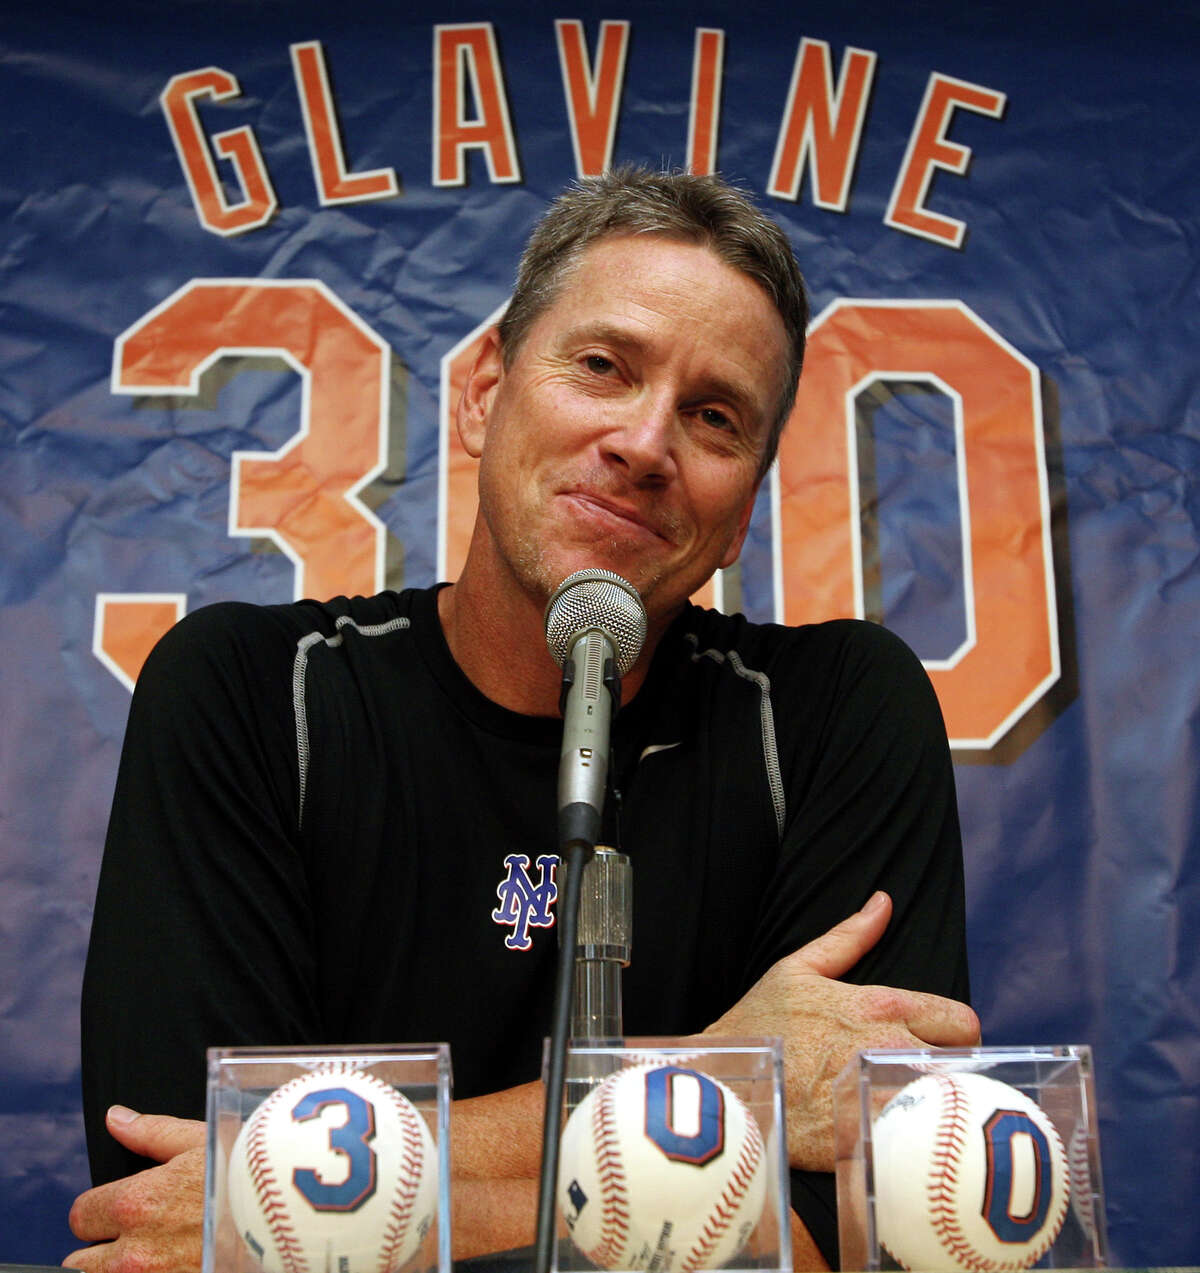 Tom Glavine won his 300th game as a member of the New York Mets on Aug. 5, 2007.